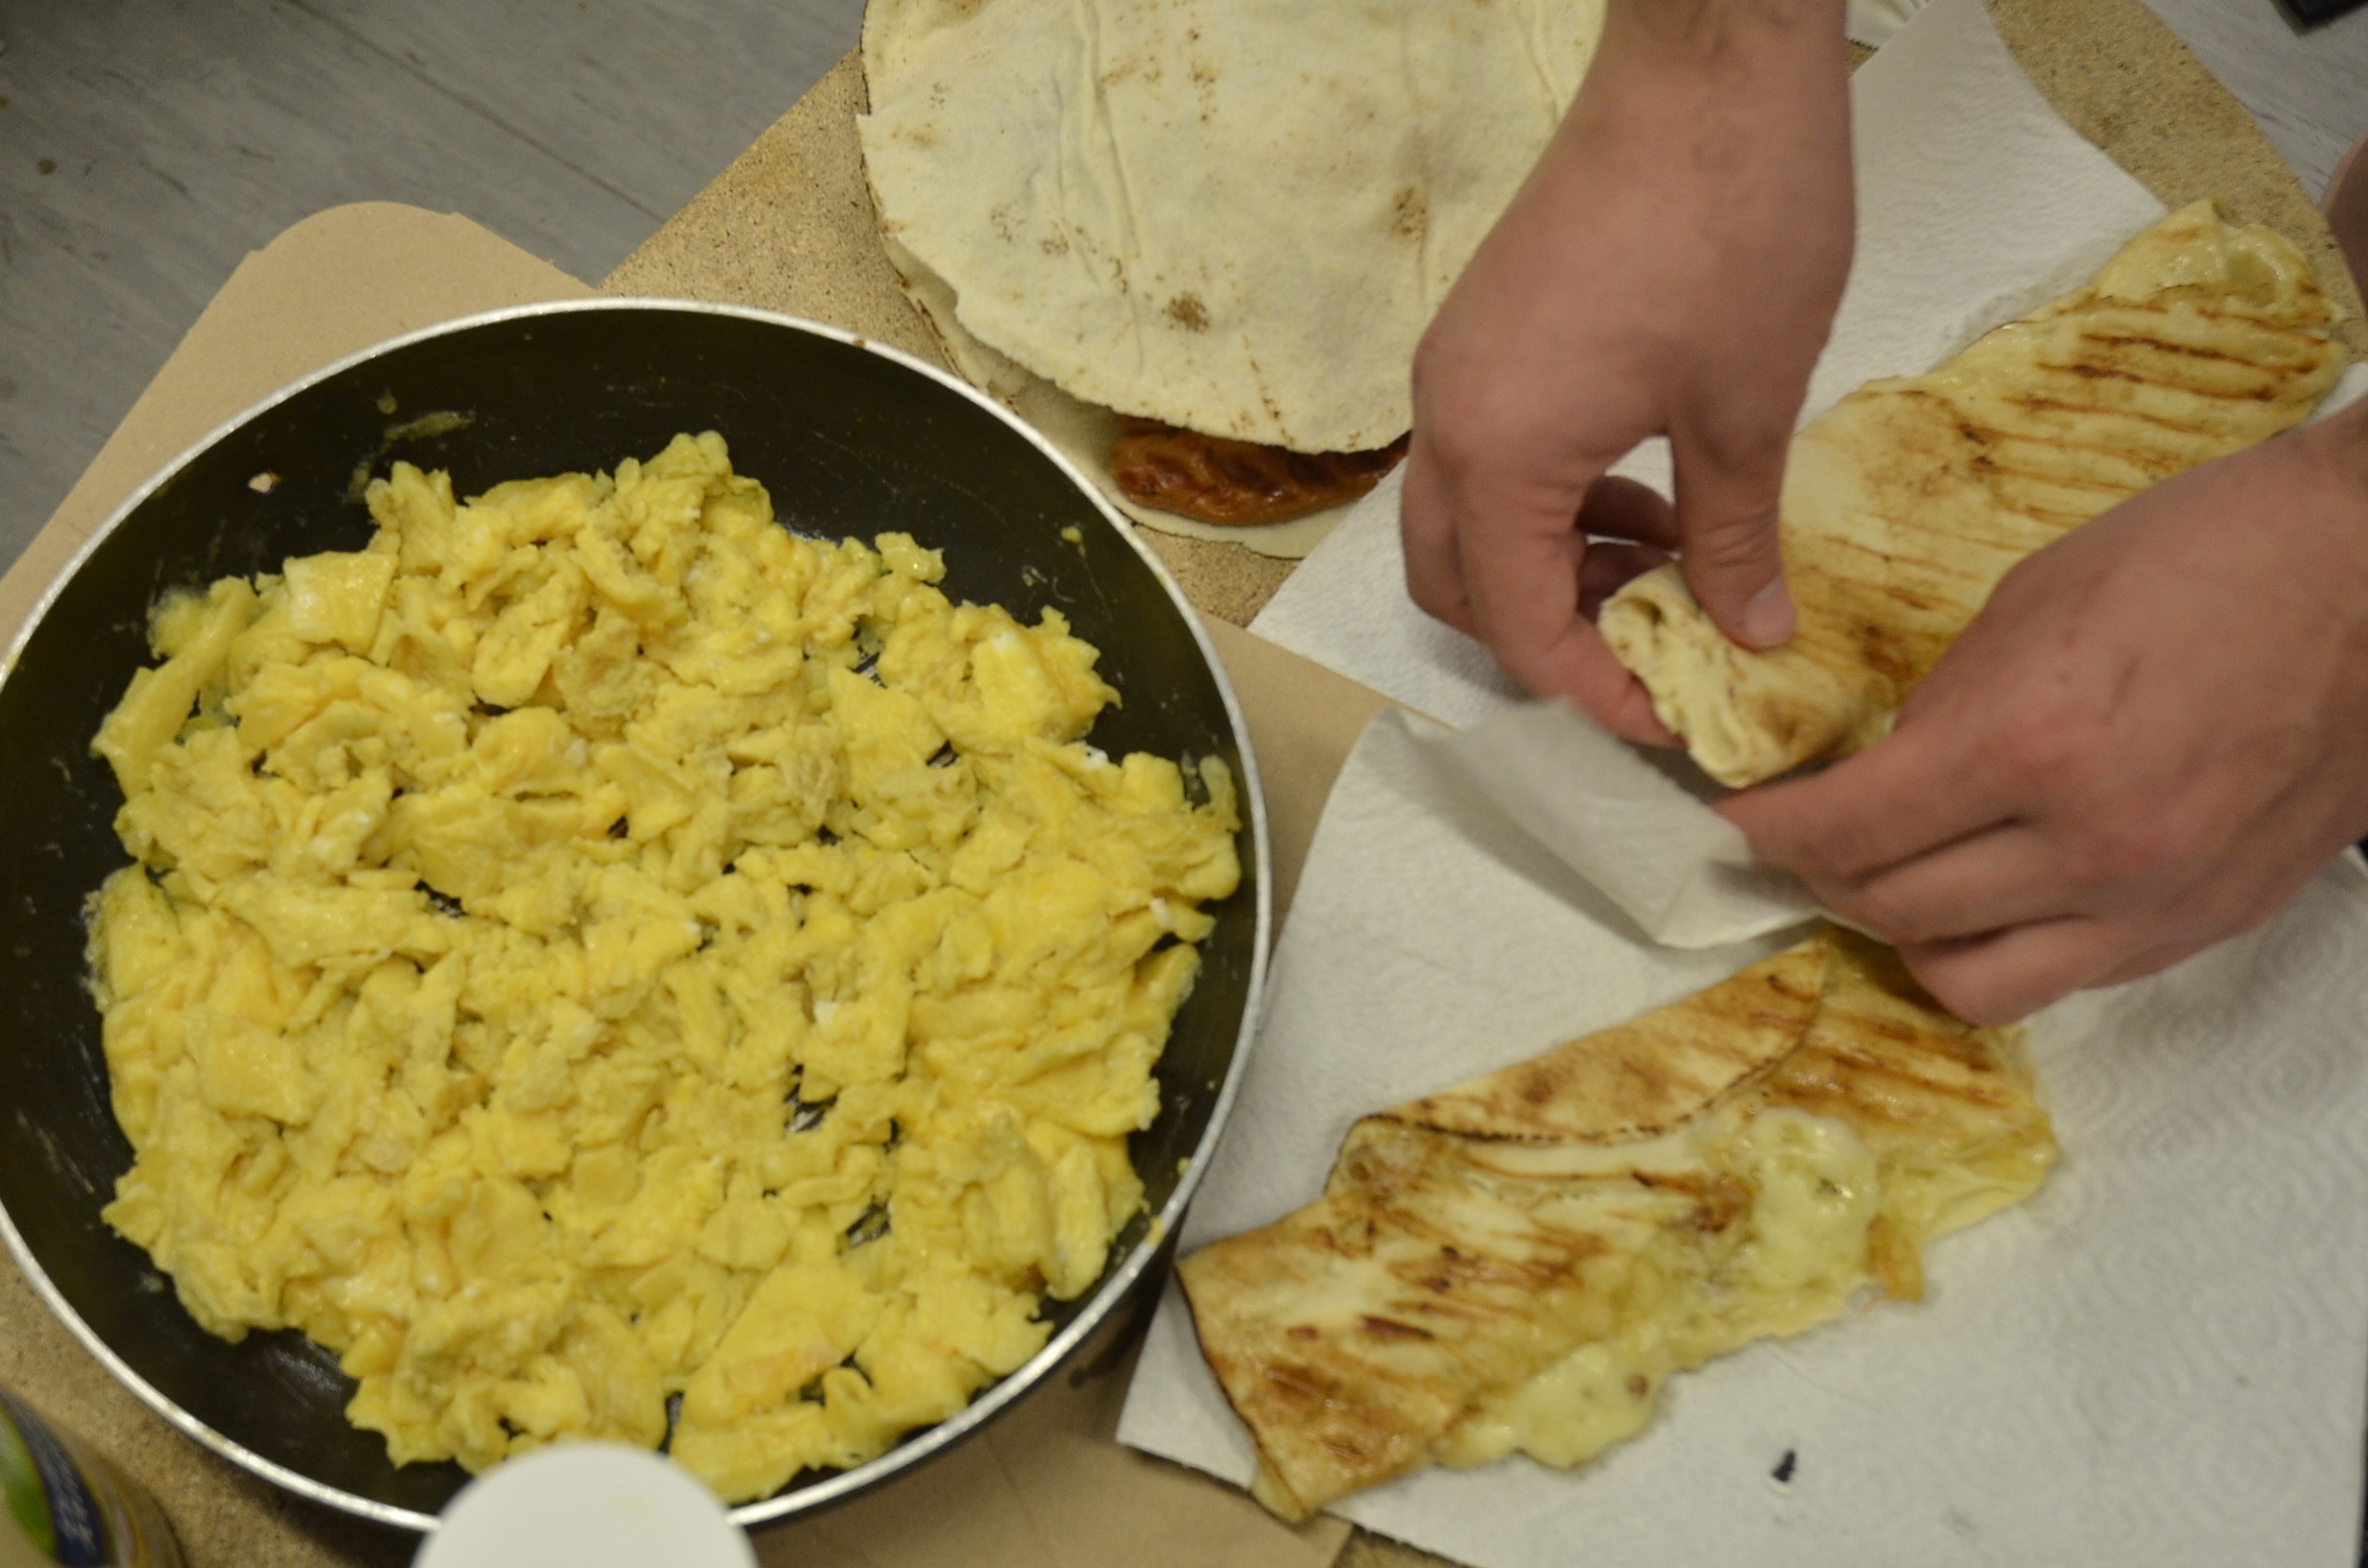 Scrambled eggs feast